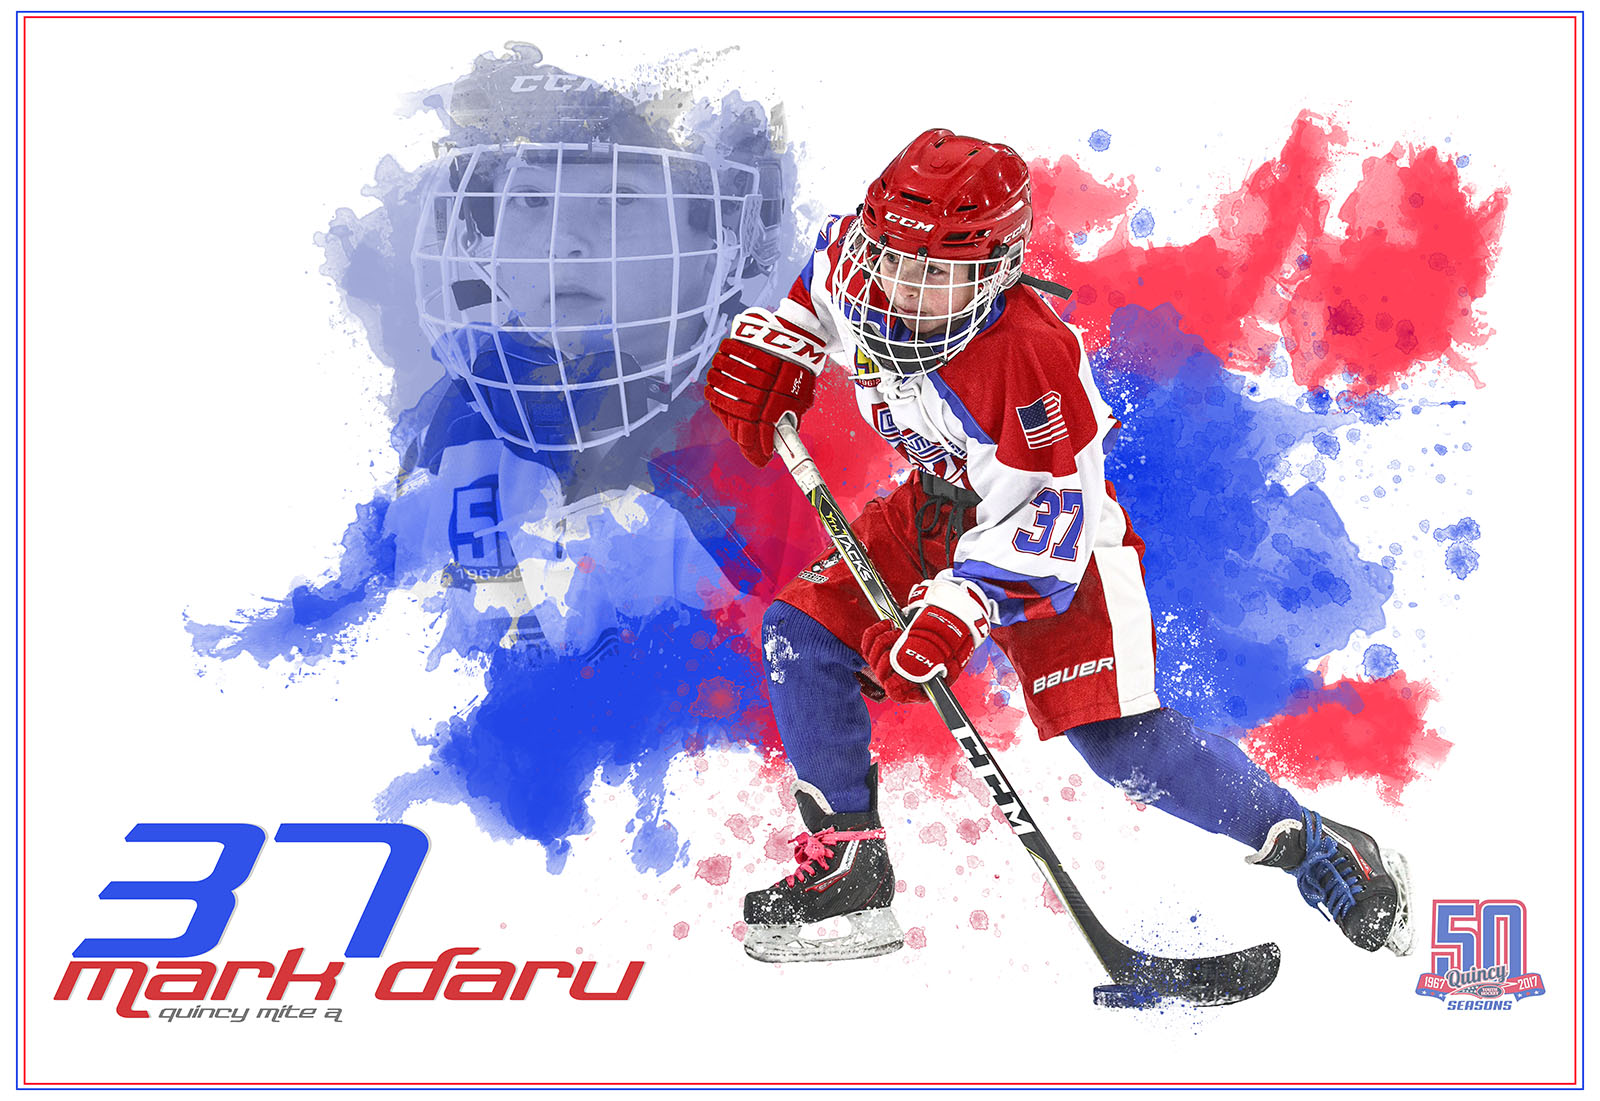 SilverPeak-Studios-Paint-Spatter-Hockey-Poster-Painting-Artwork-Sportrait-Quincy